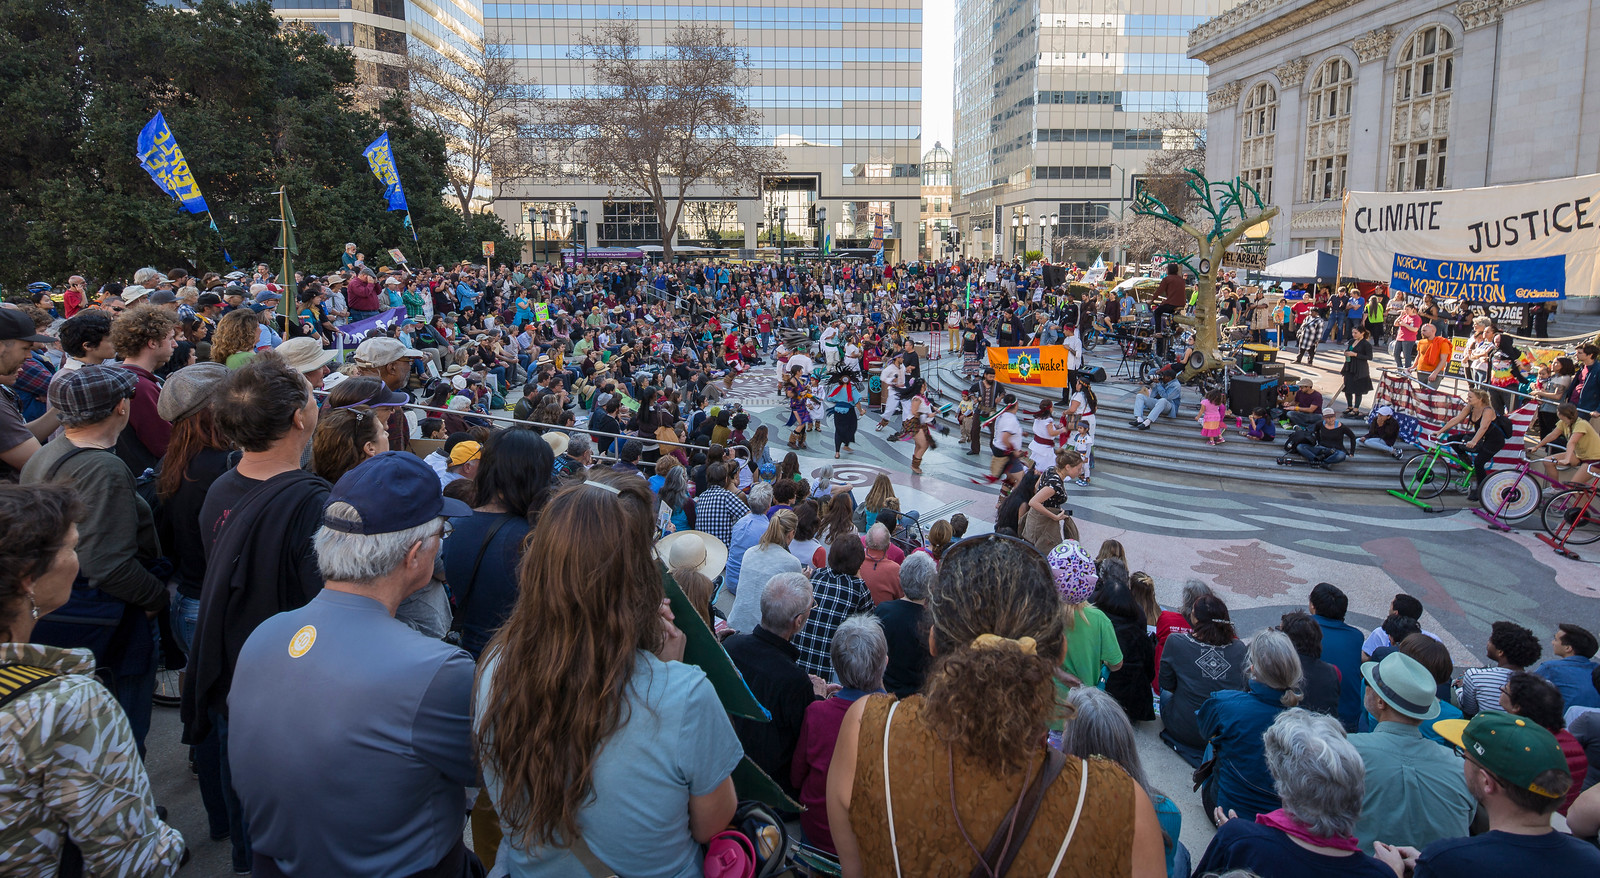 Northern California Climate Mobilization rally at Oakland City Hall, November 2015